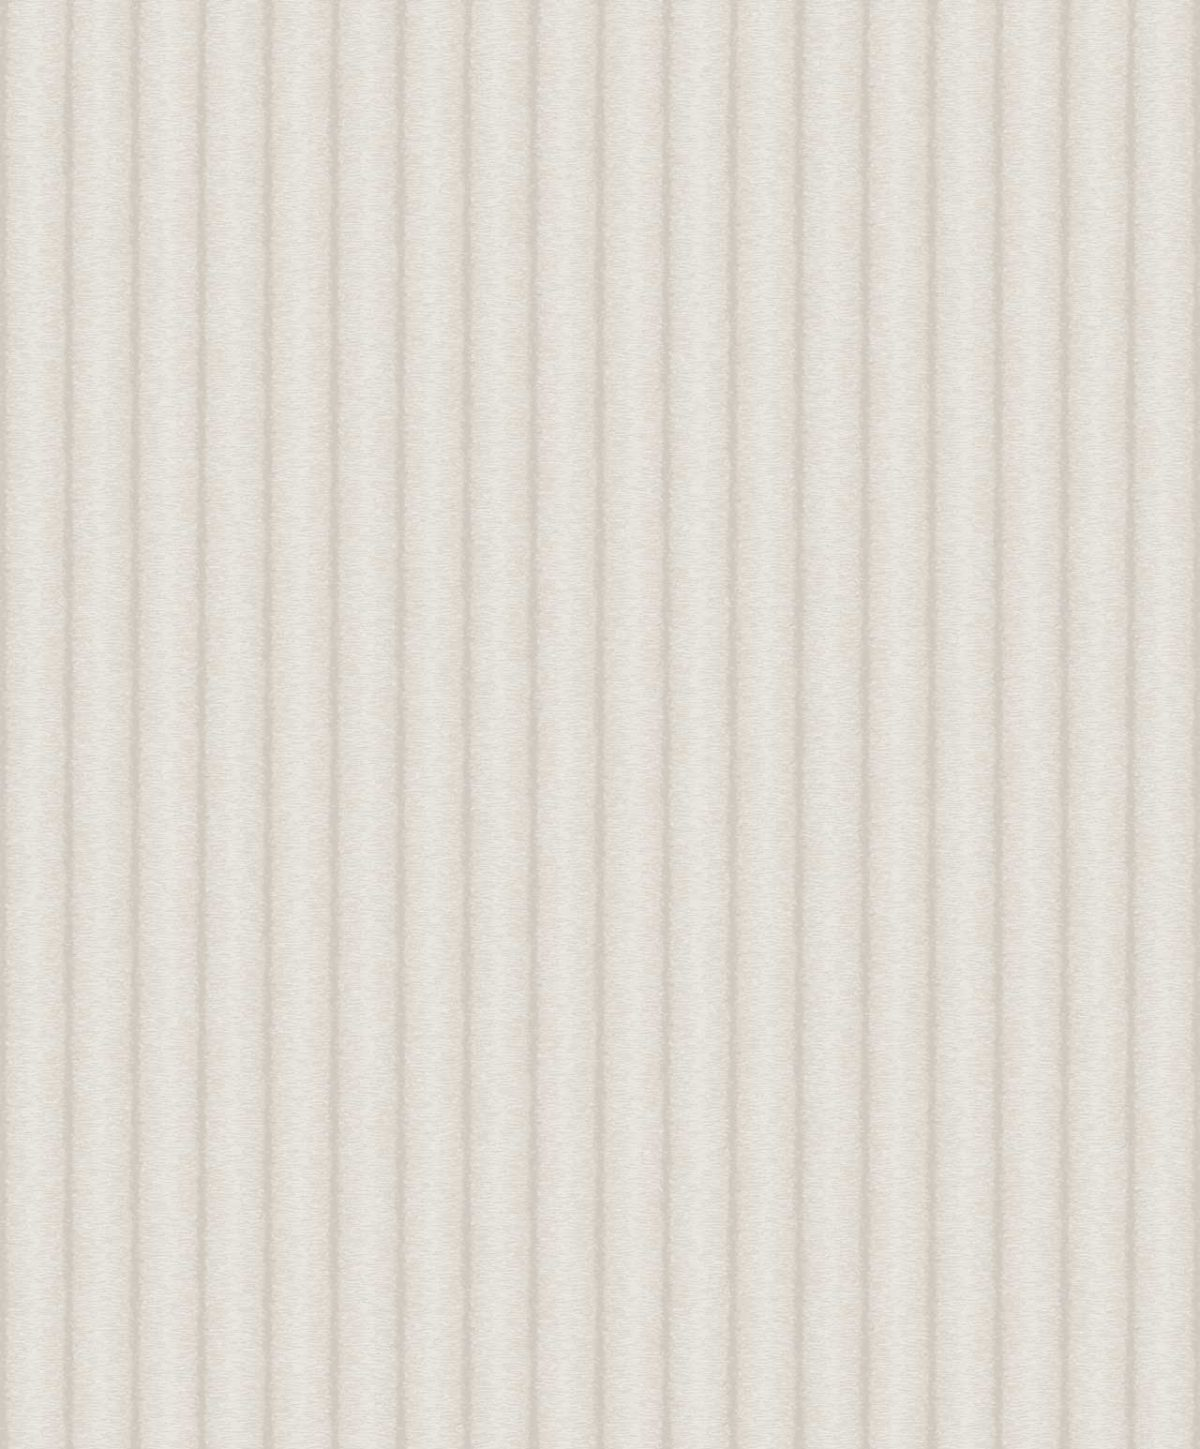 Capri-Luxury-Wallpaper-CP00718-OMBRE-STRIPE